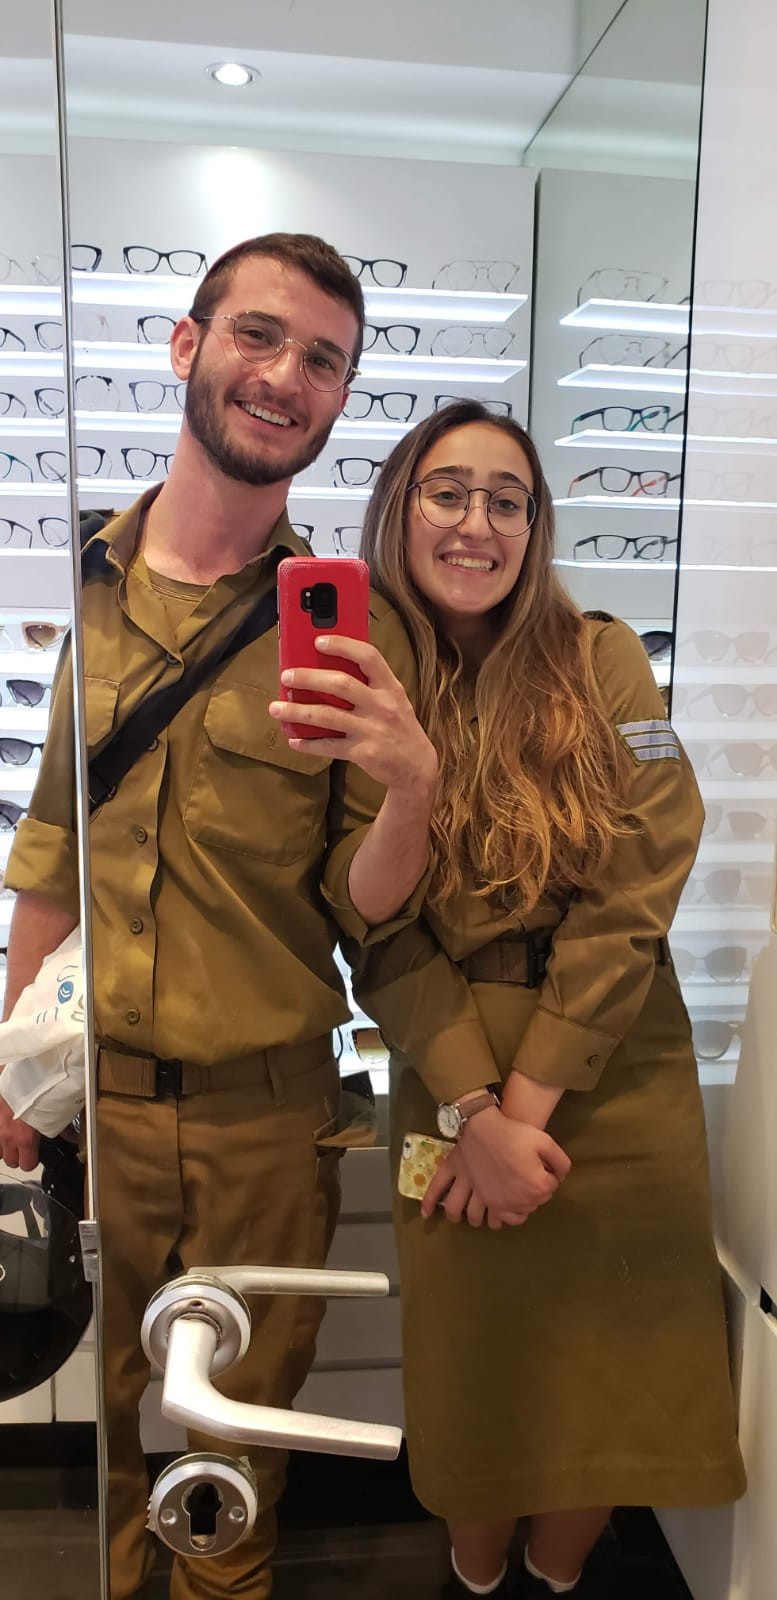 Oleh Sophie Knop trying on glasses at a store with a friend in their IDF uniforms